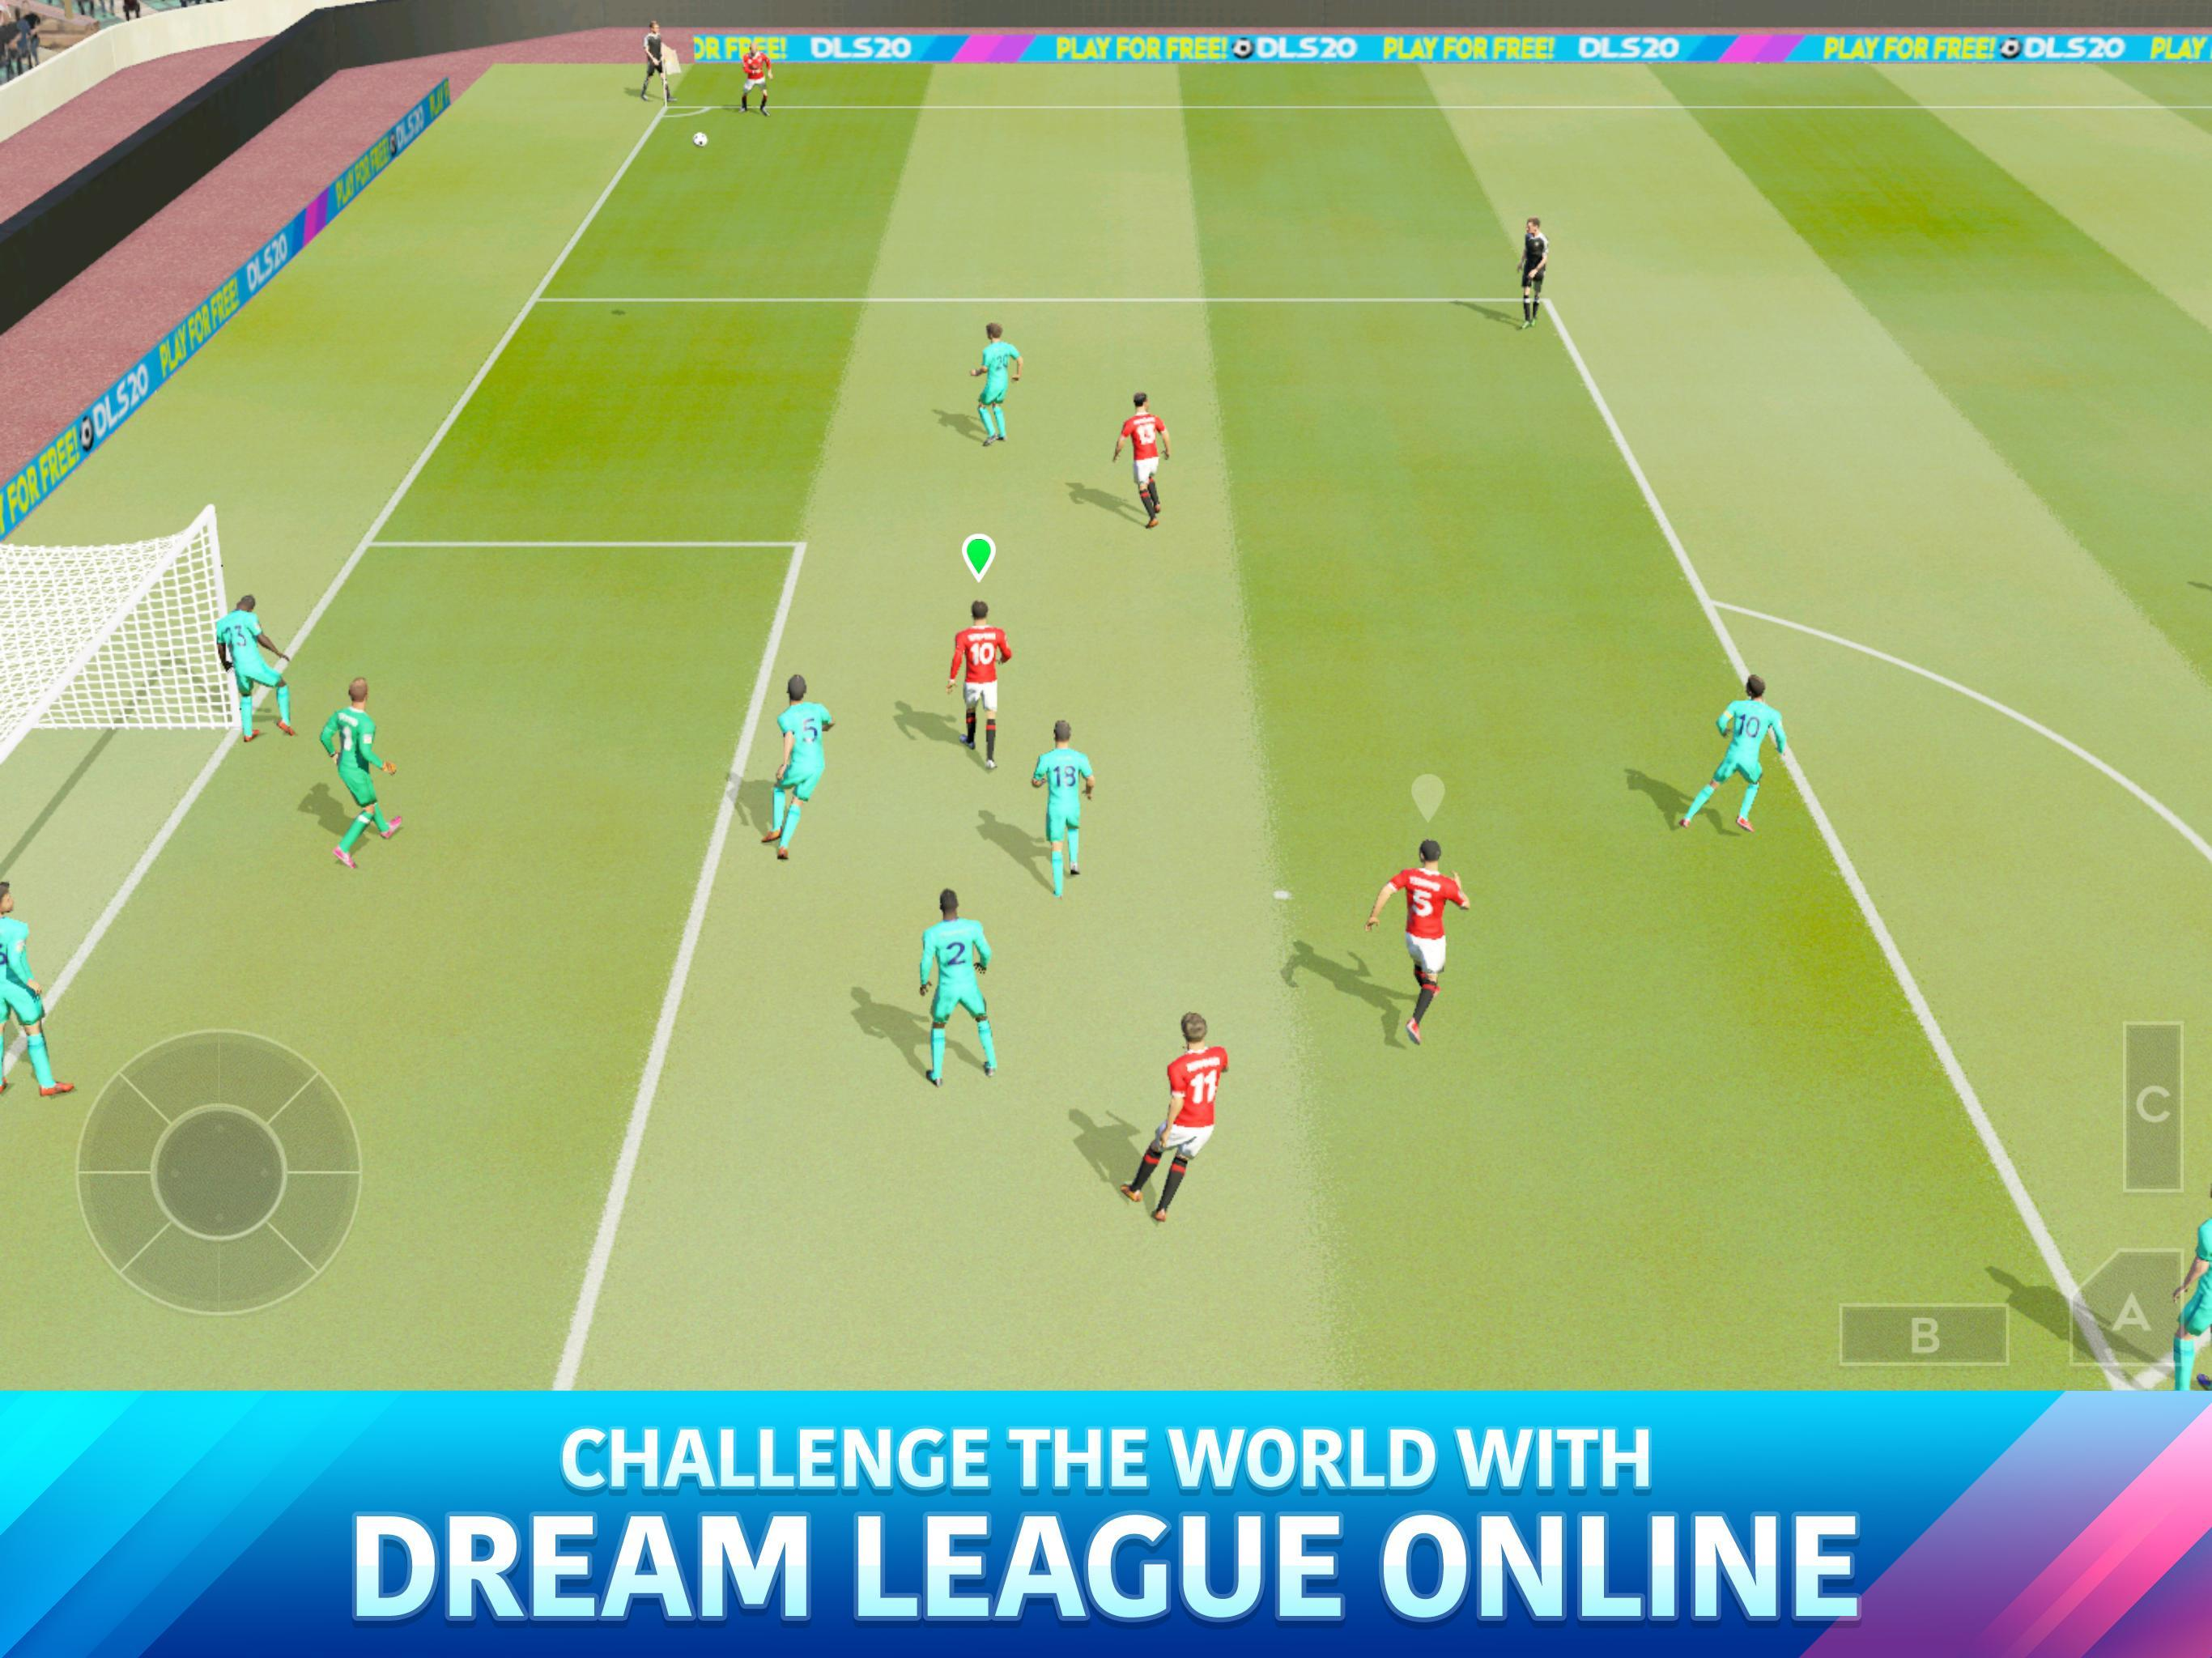 Dream League Soccer 2020 for Android   APK Download 2732x2048